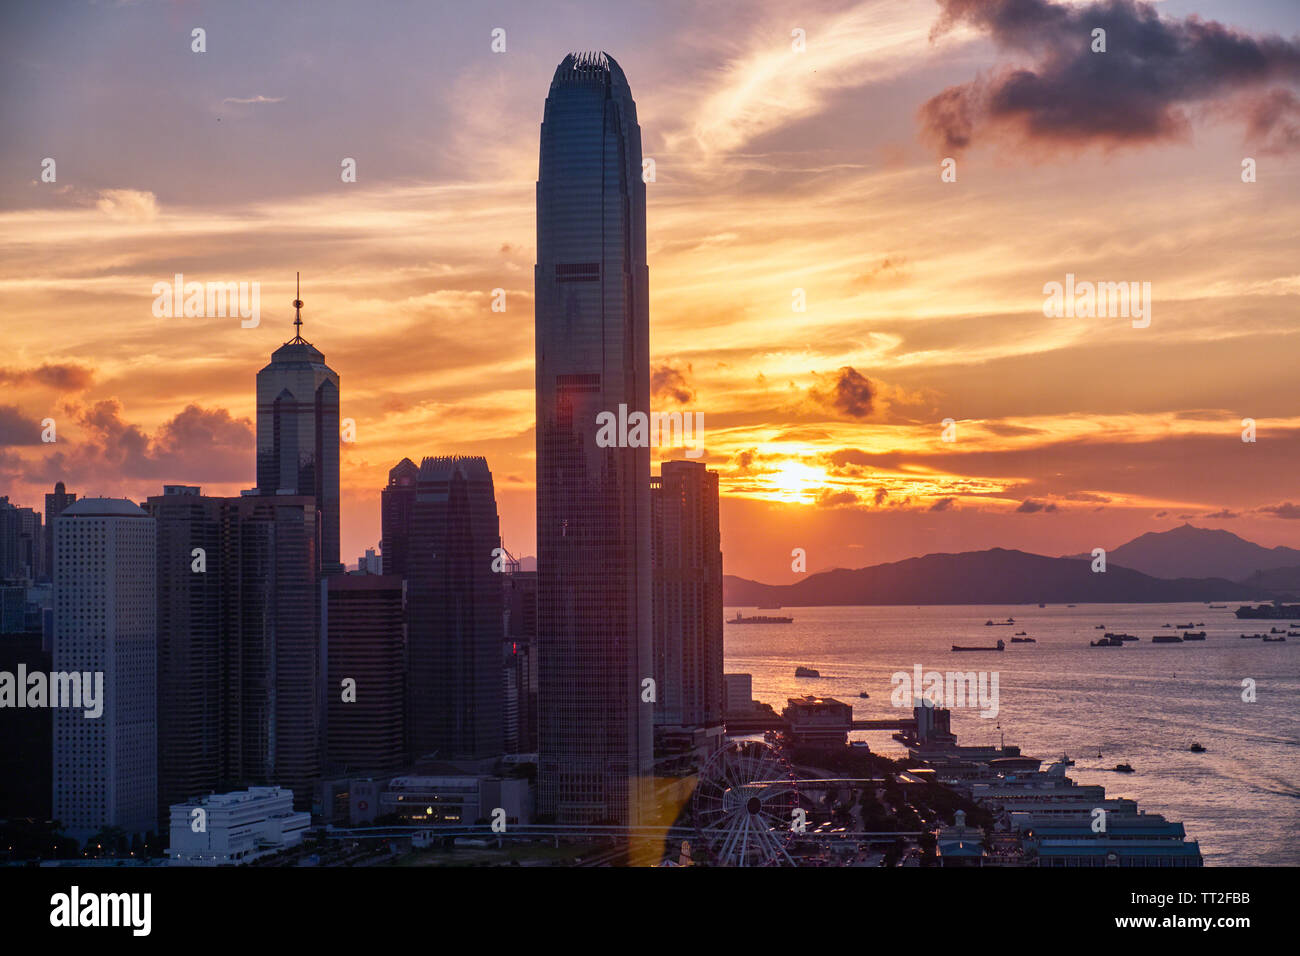 Skyscrapers of the International Commerce Center at Sunset, Hong Kong Stock Photo